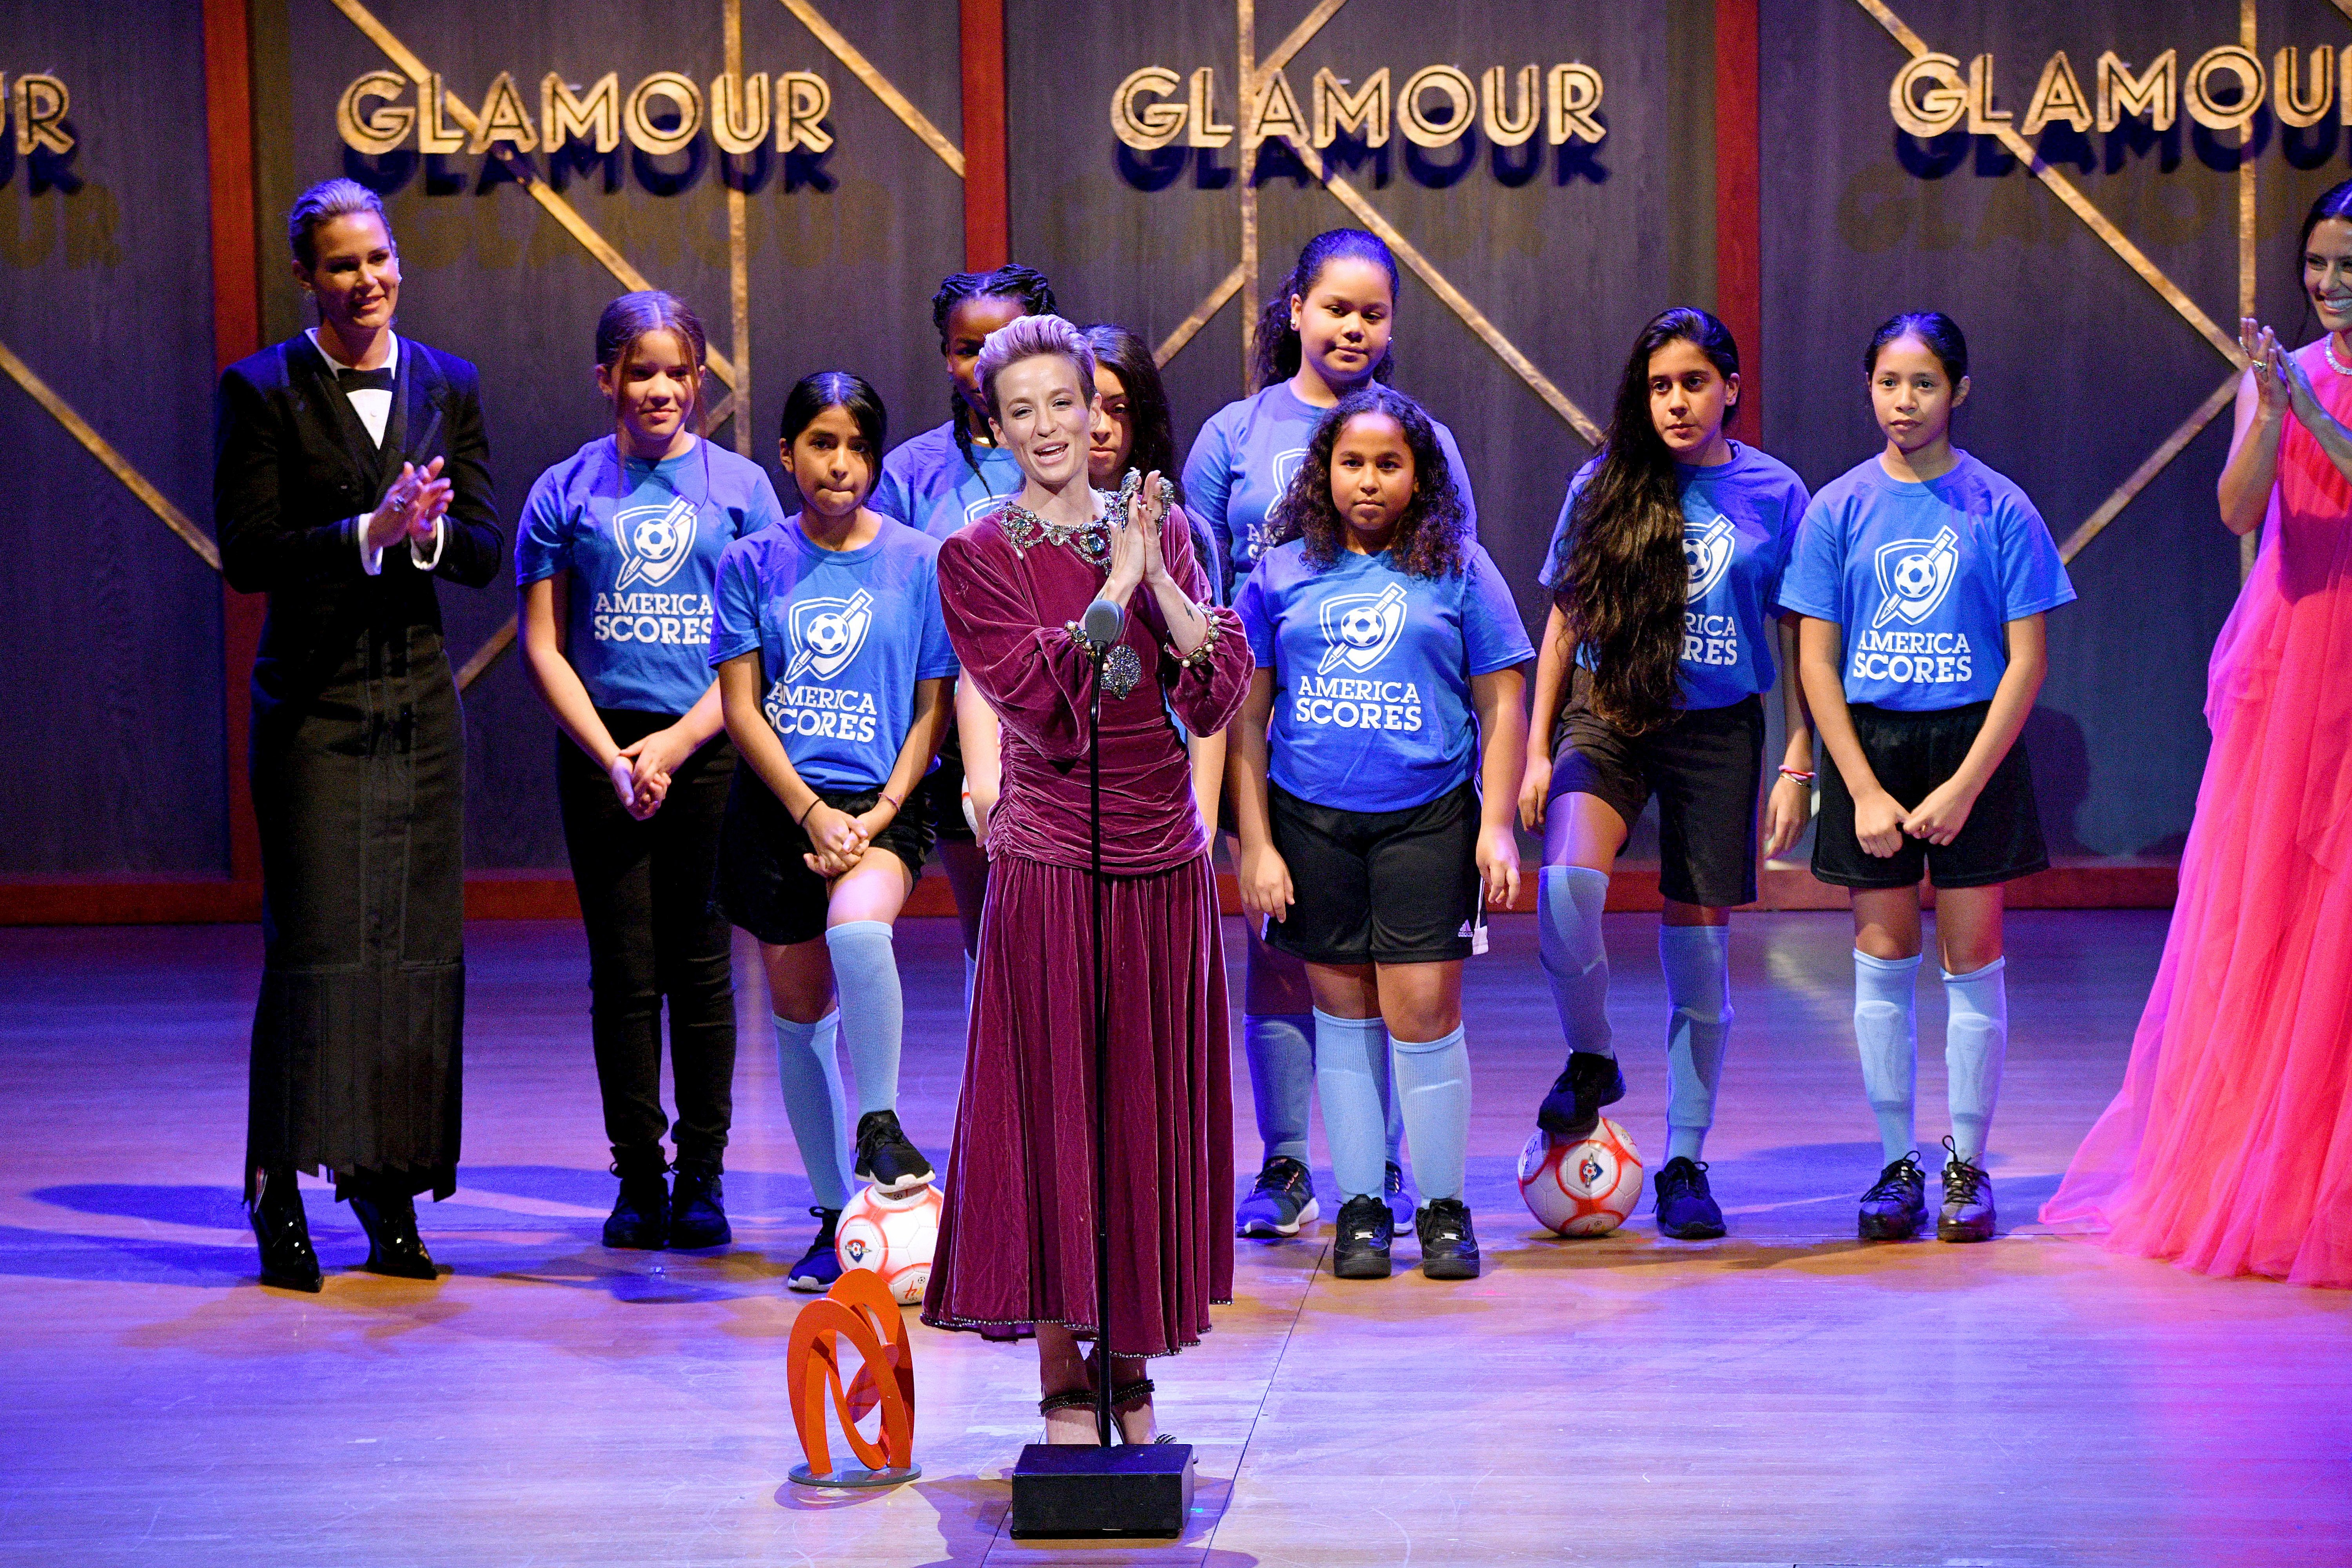 Megan Rapinoe speaks onstage alongside the Mott Hall Girls soccer team at the 2019 Glamour Women Of The Year Awards at Alice Tully Hall on November 11, 2019, in New York City. | Source: Getty Images.